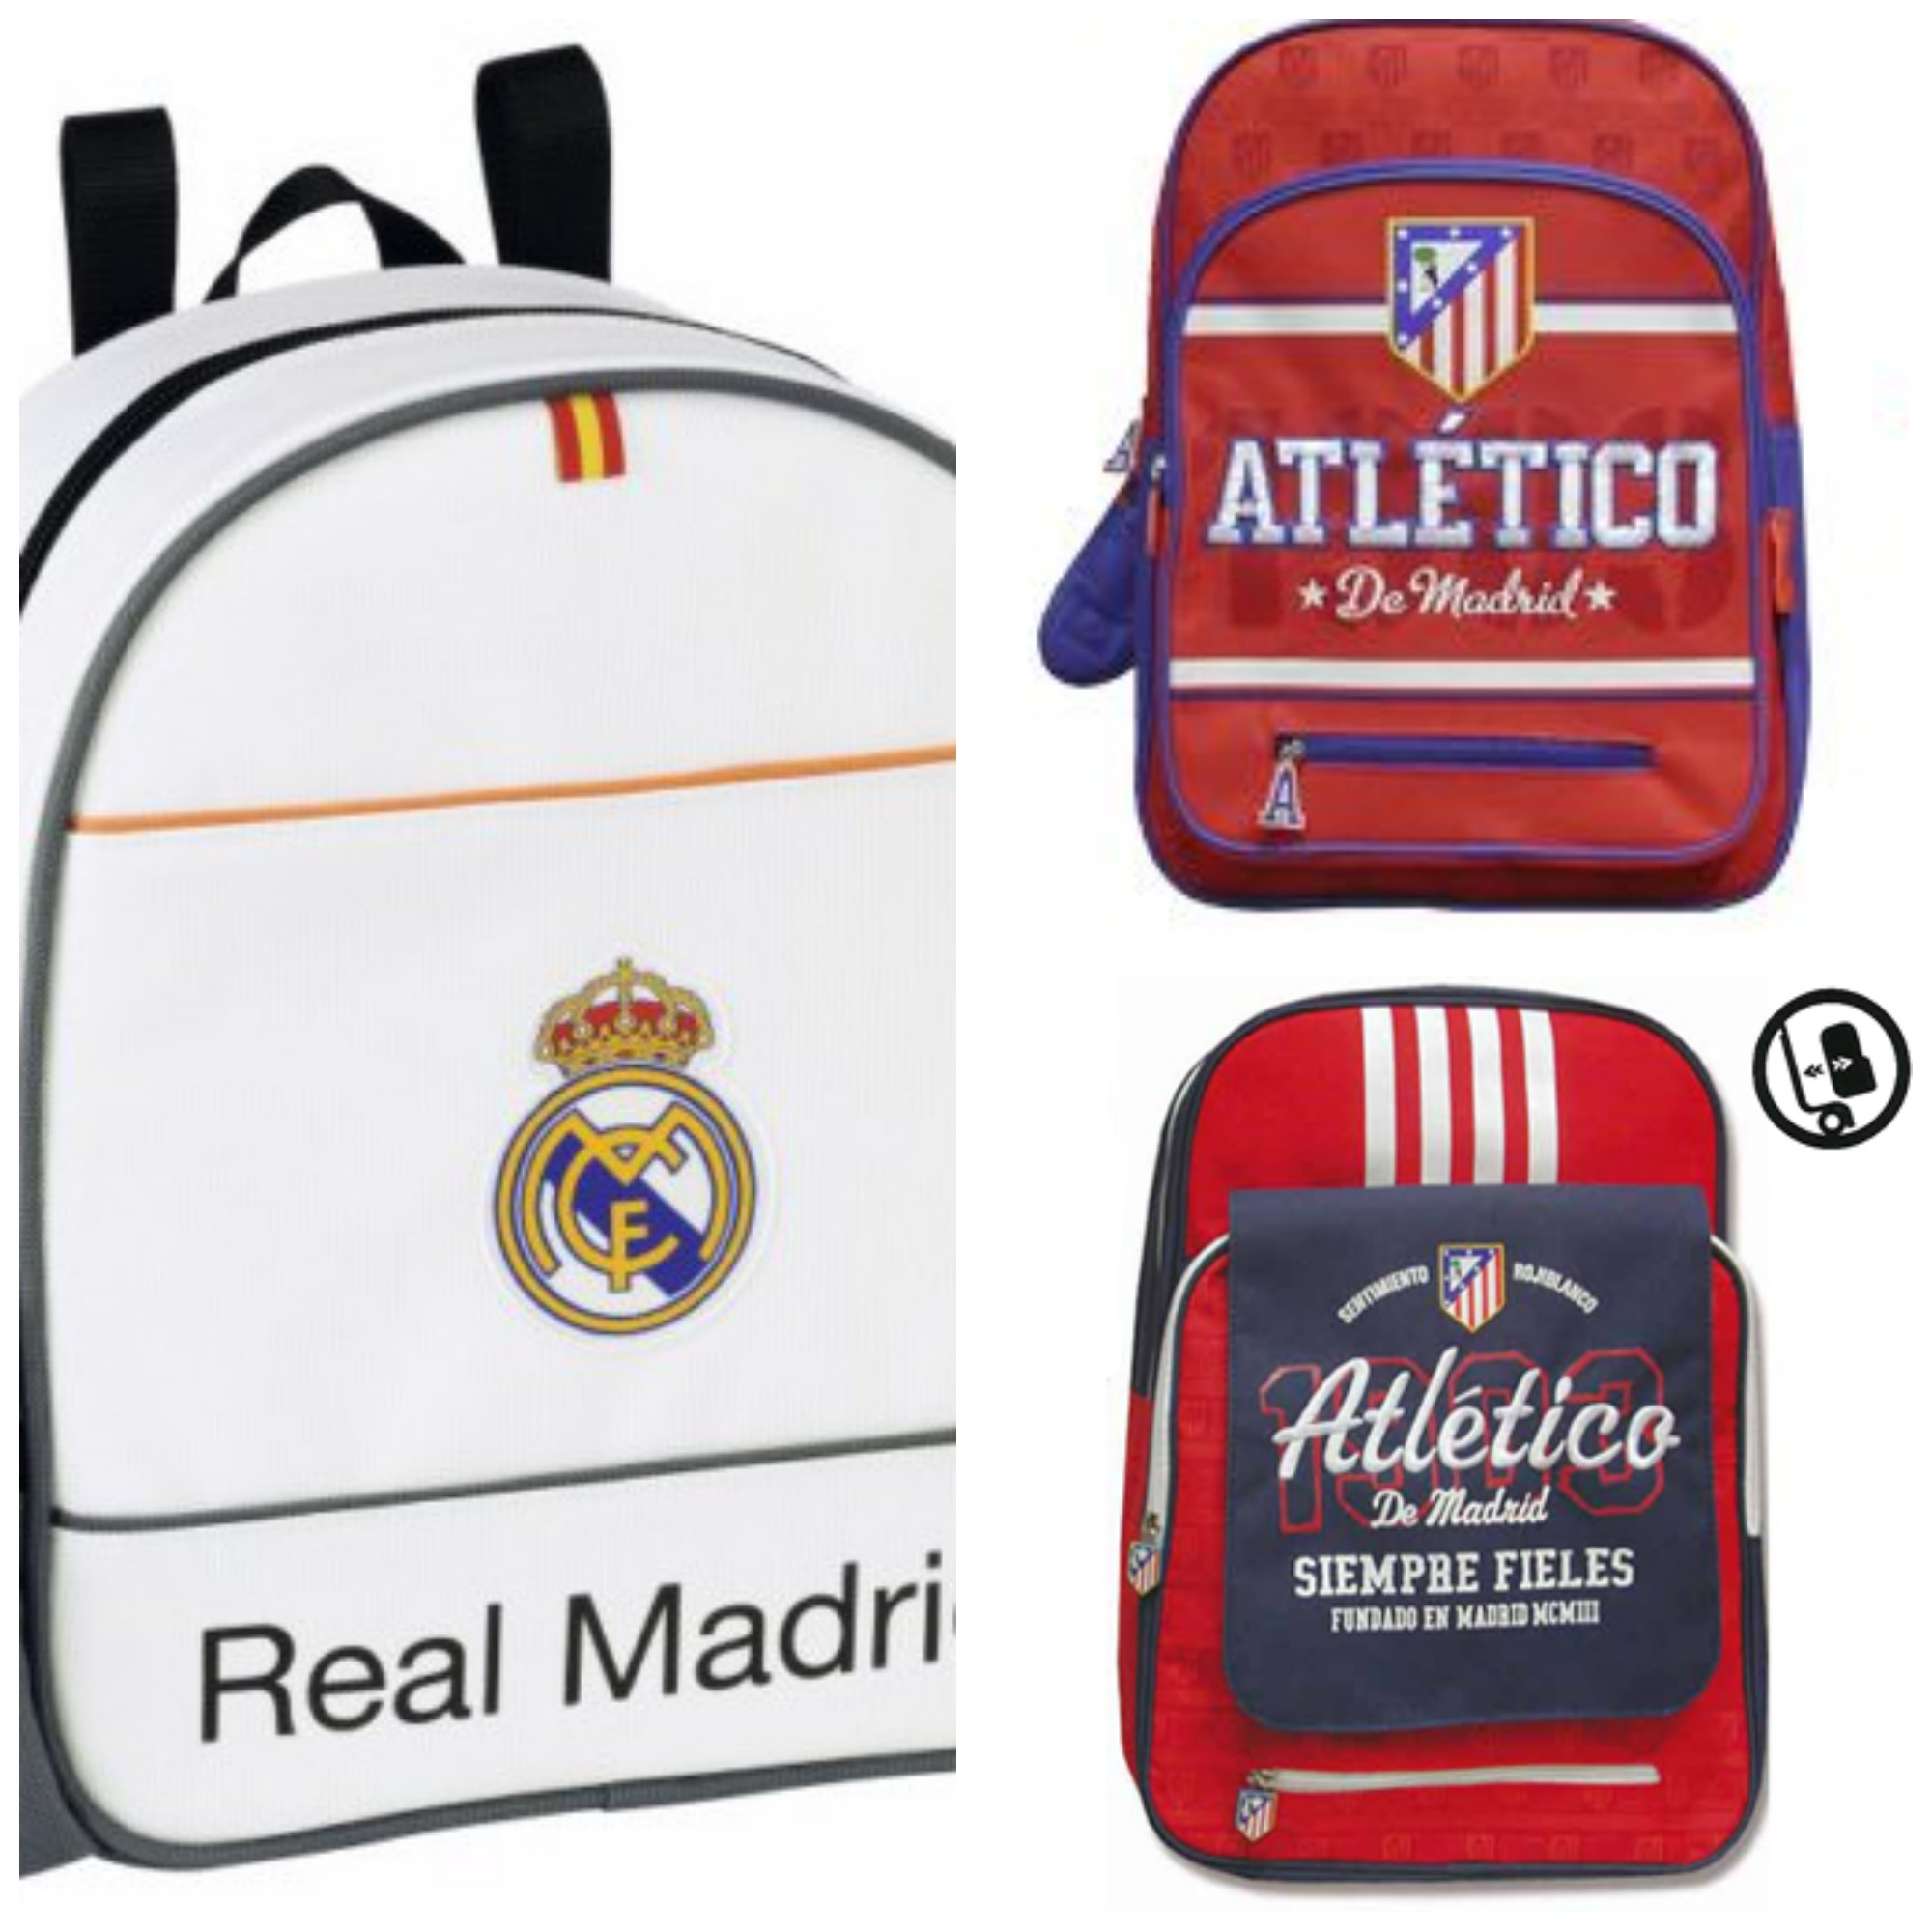 Mochilas de Real Madrid y Atletico de madrid